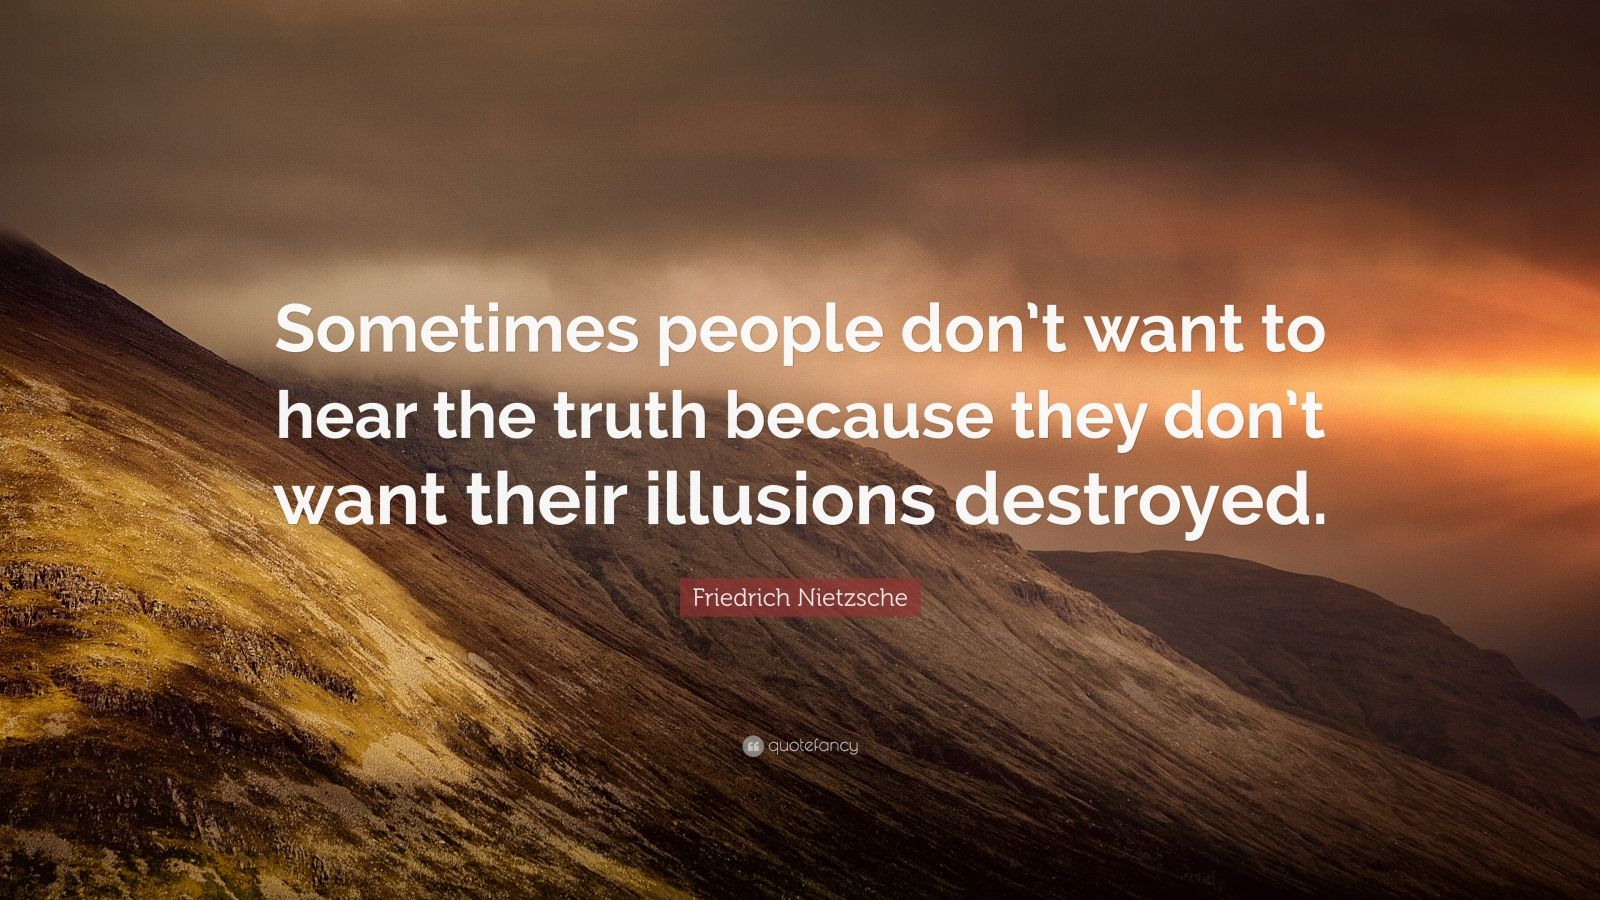 """Friedrich Nietzsche Quote: """"Sometimes people don't want to hear the truth because they don't want their illusions destroyed."""""""